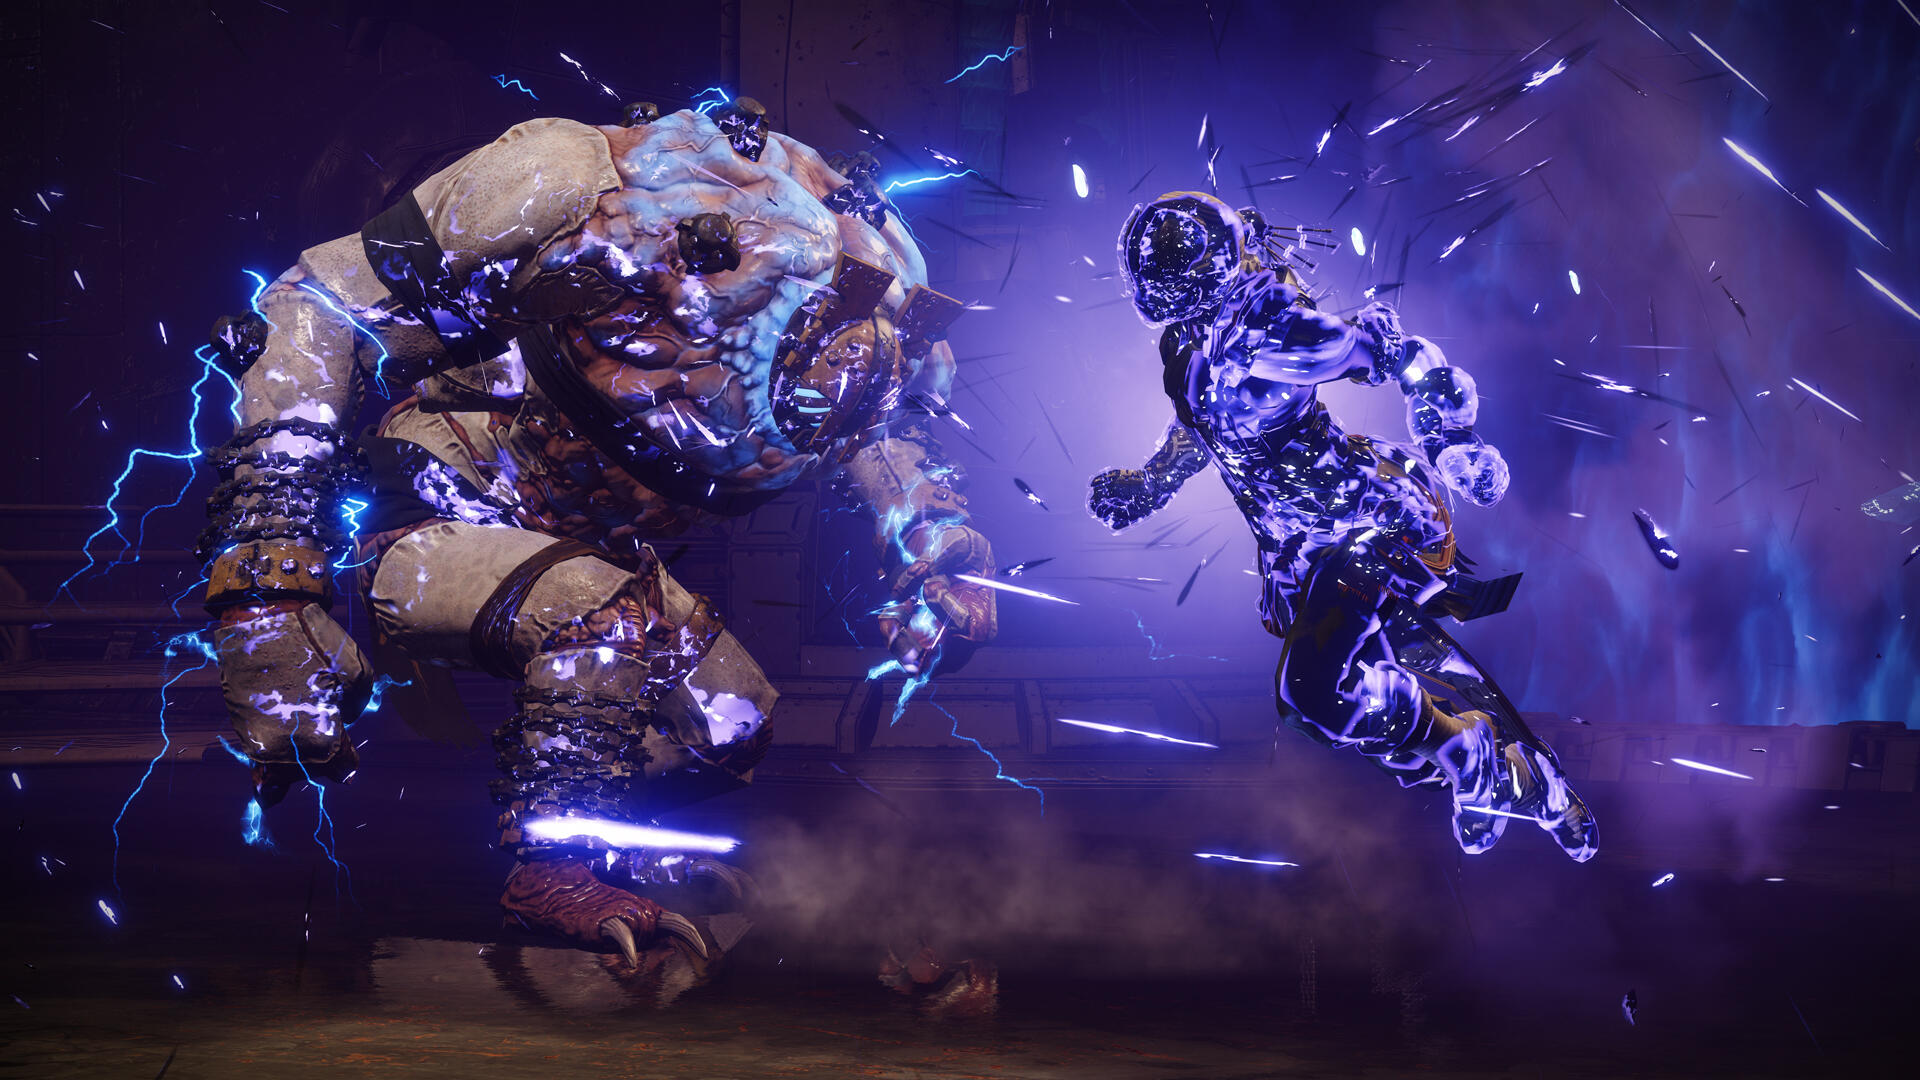 Destiny 2 Cross-Save Leaked, but the Feature Might Not Come